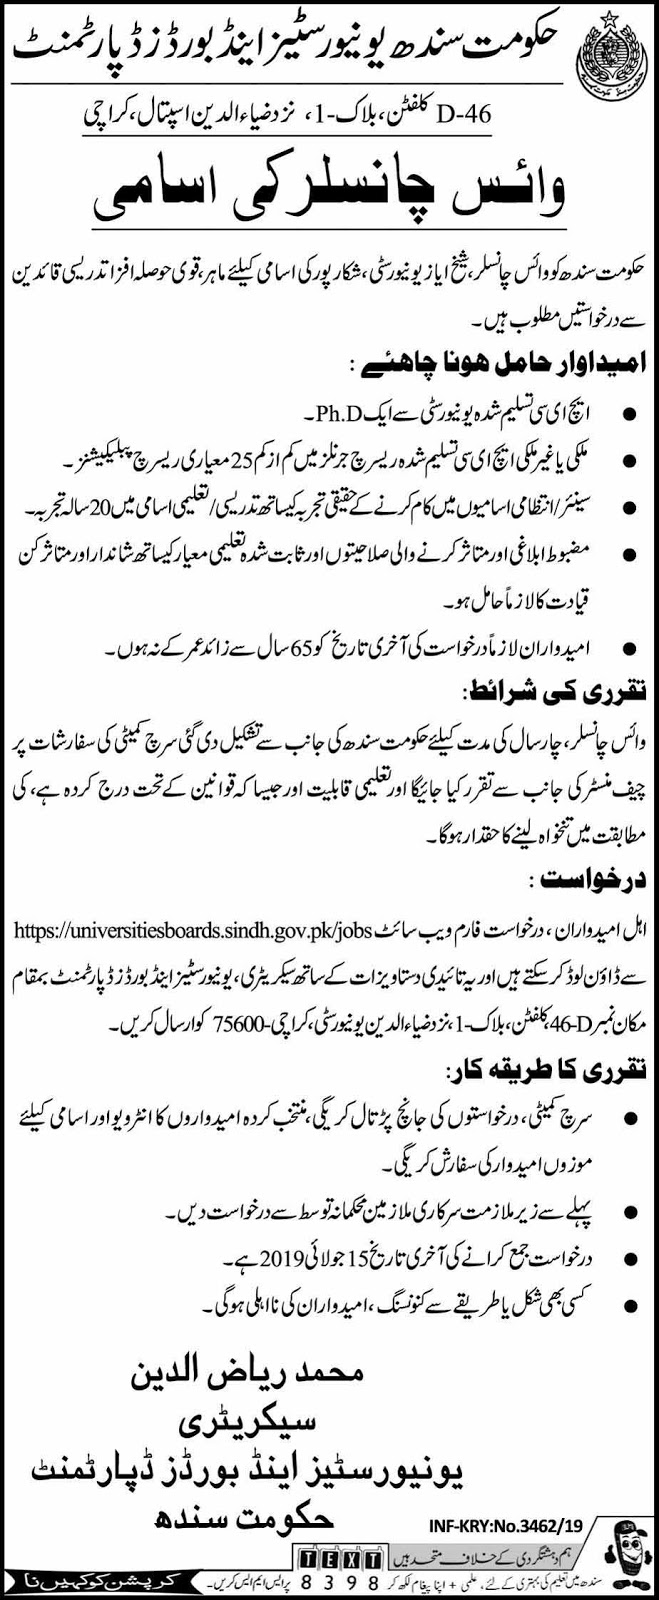 Latest Jobs in Universities And Boards Department